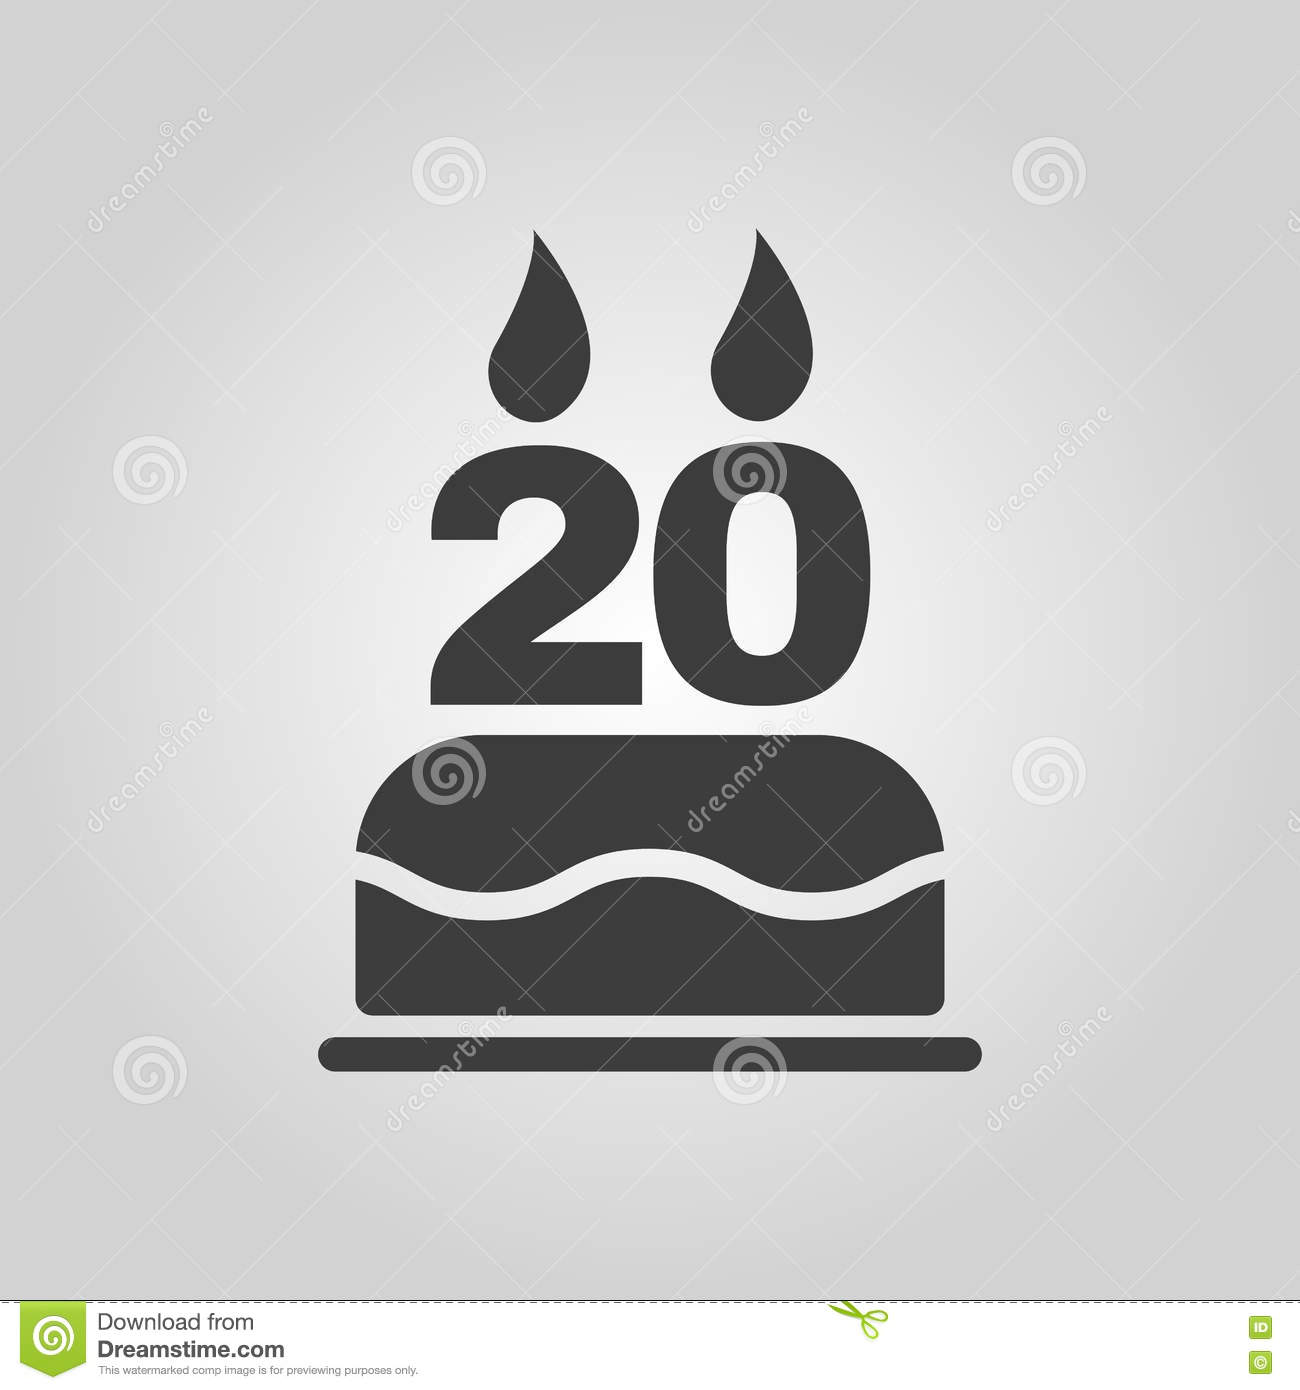 The birthday cake with candles in the form of number 20 icon the birthday cake with candles in the form of number 20 icon birthday symbol flat biocorpaavc